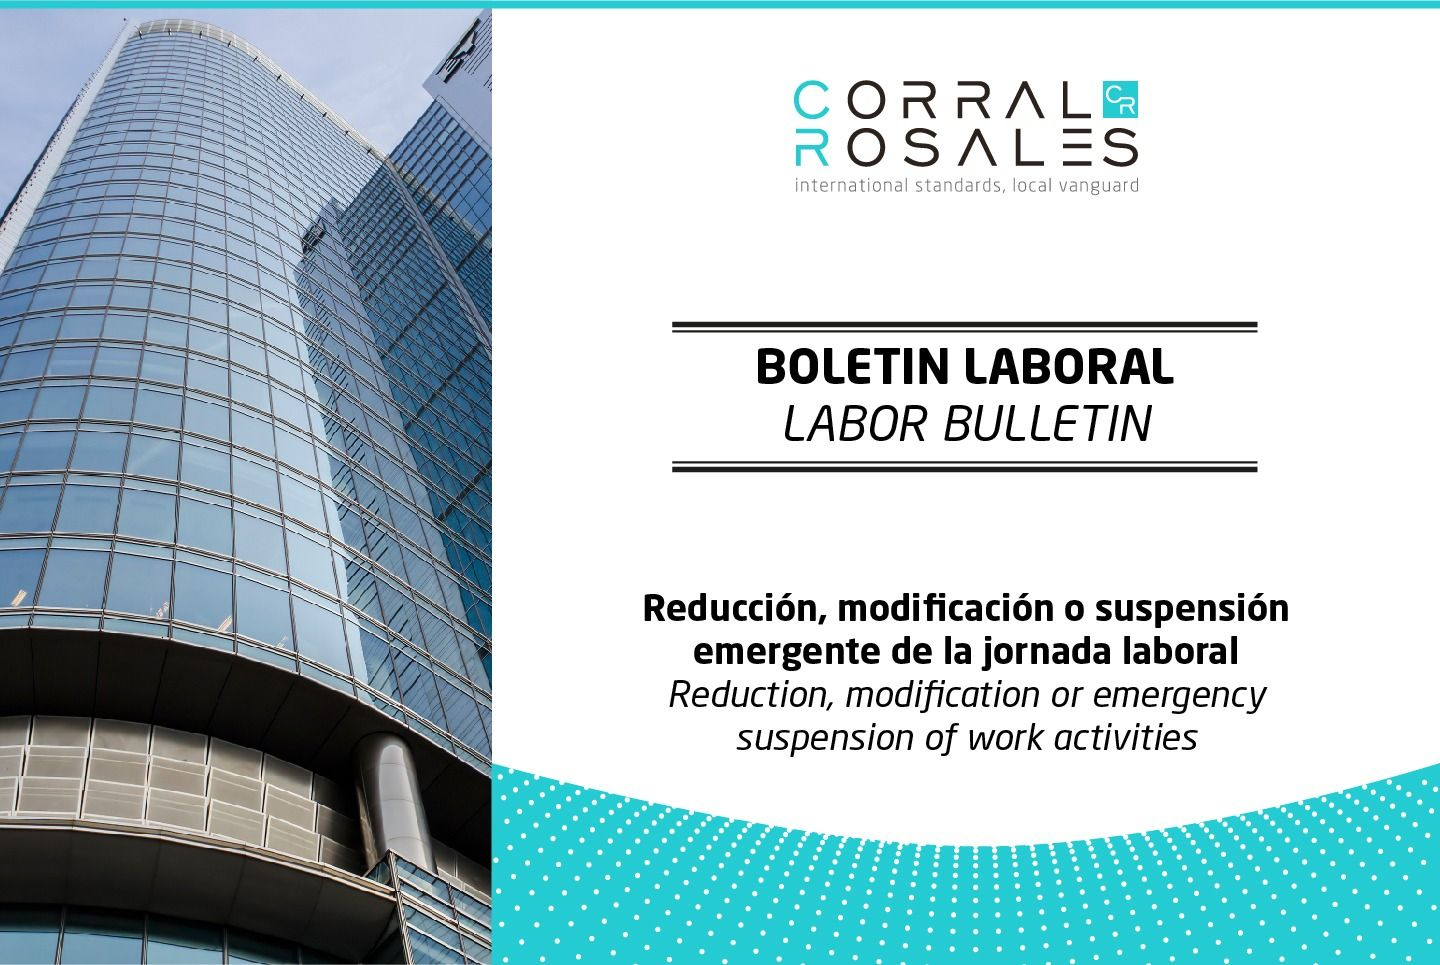 work-activities-reduction-modification-suspension-Covid-19-labor